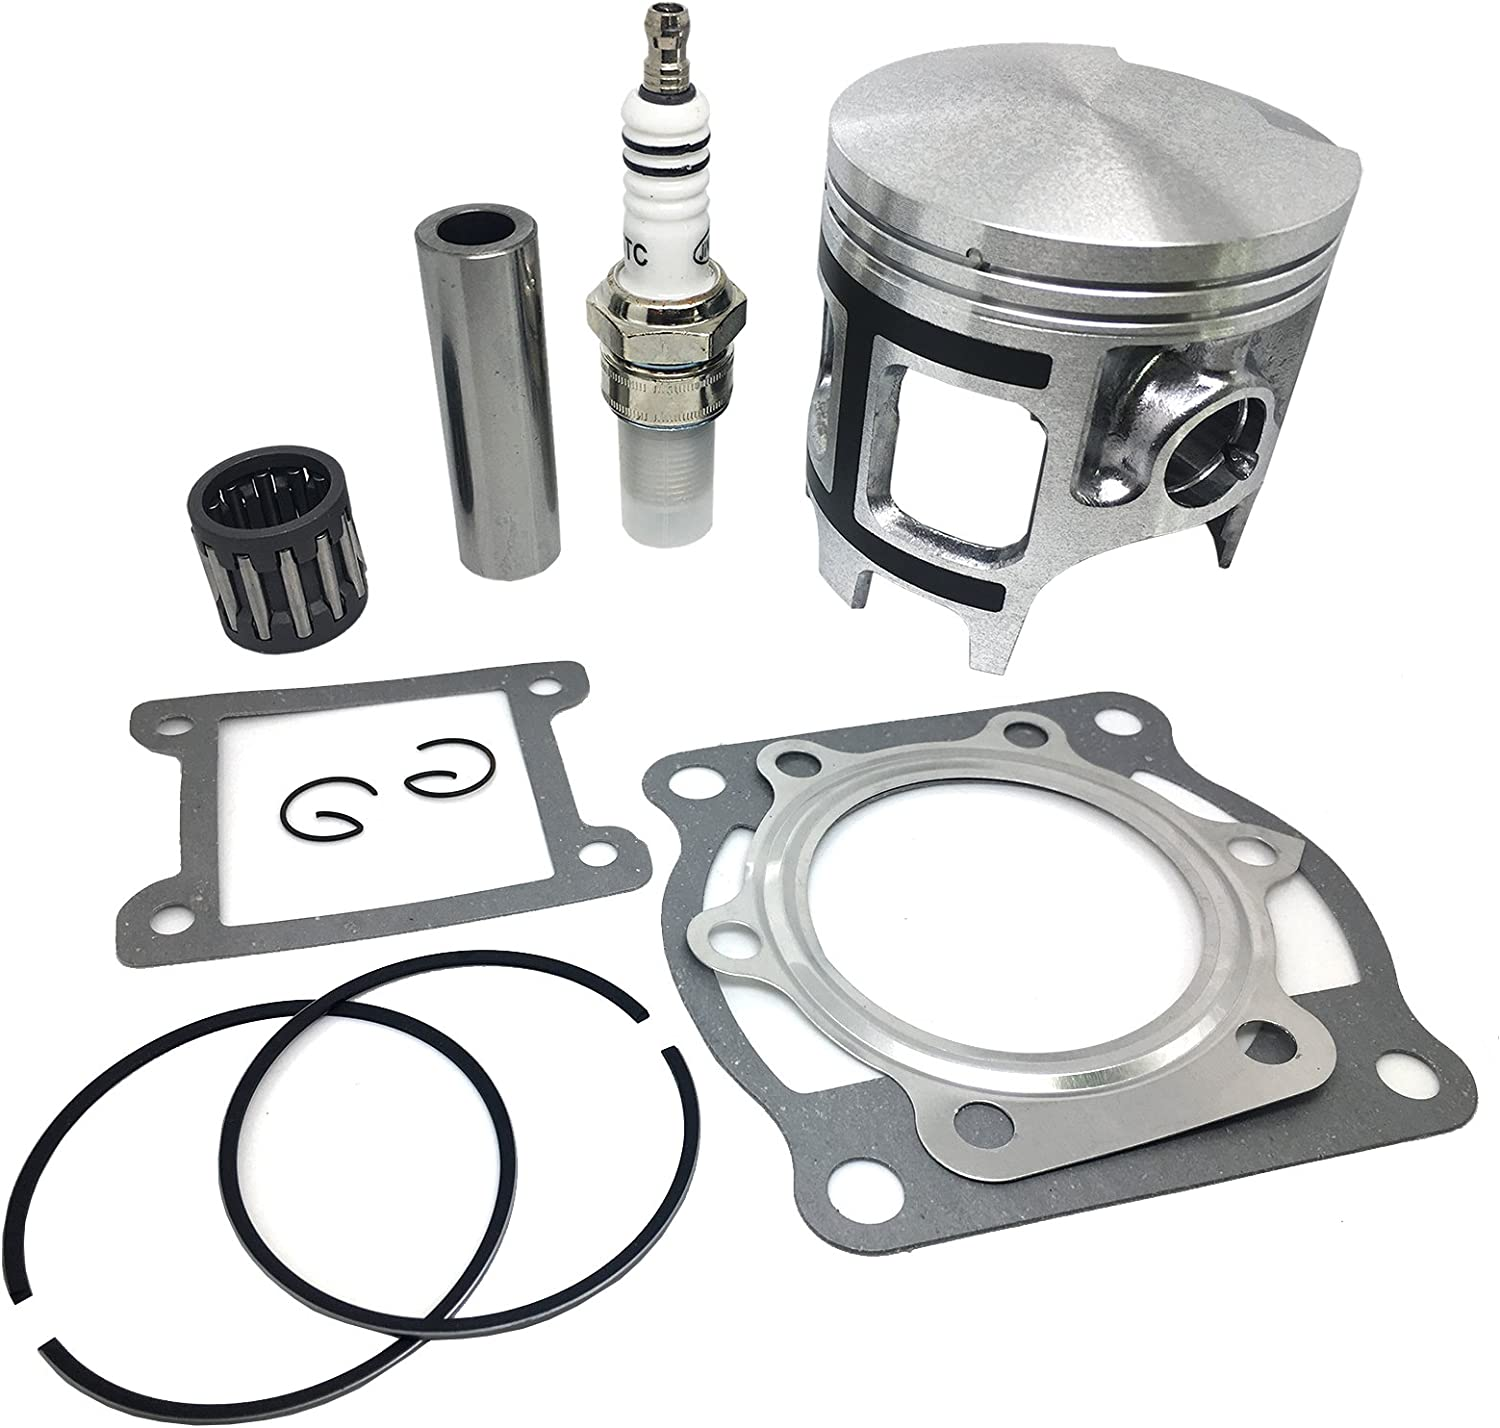 CBK Sales for sale Piston Gasket Rings Top End 20 Yamaha Max 71% OFF for Blaster Kit